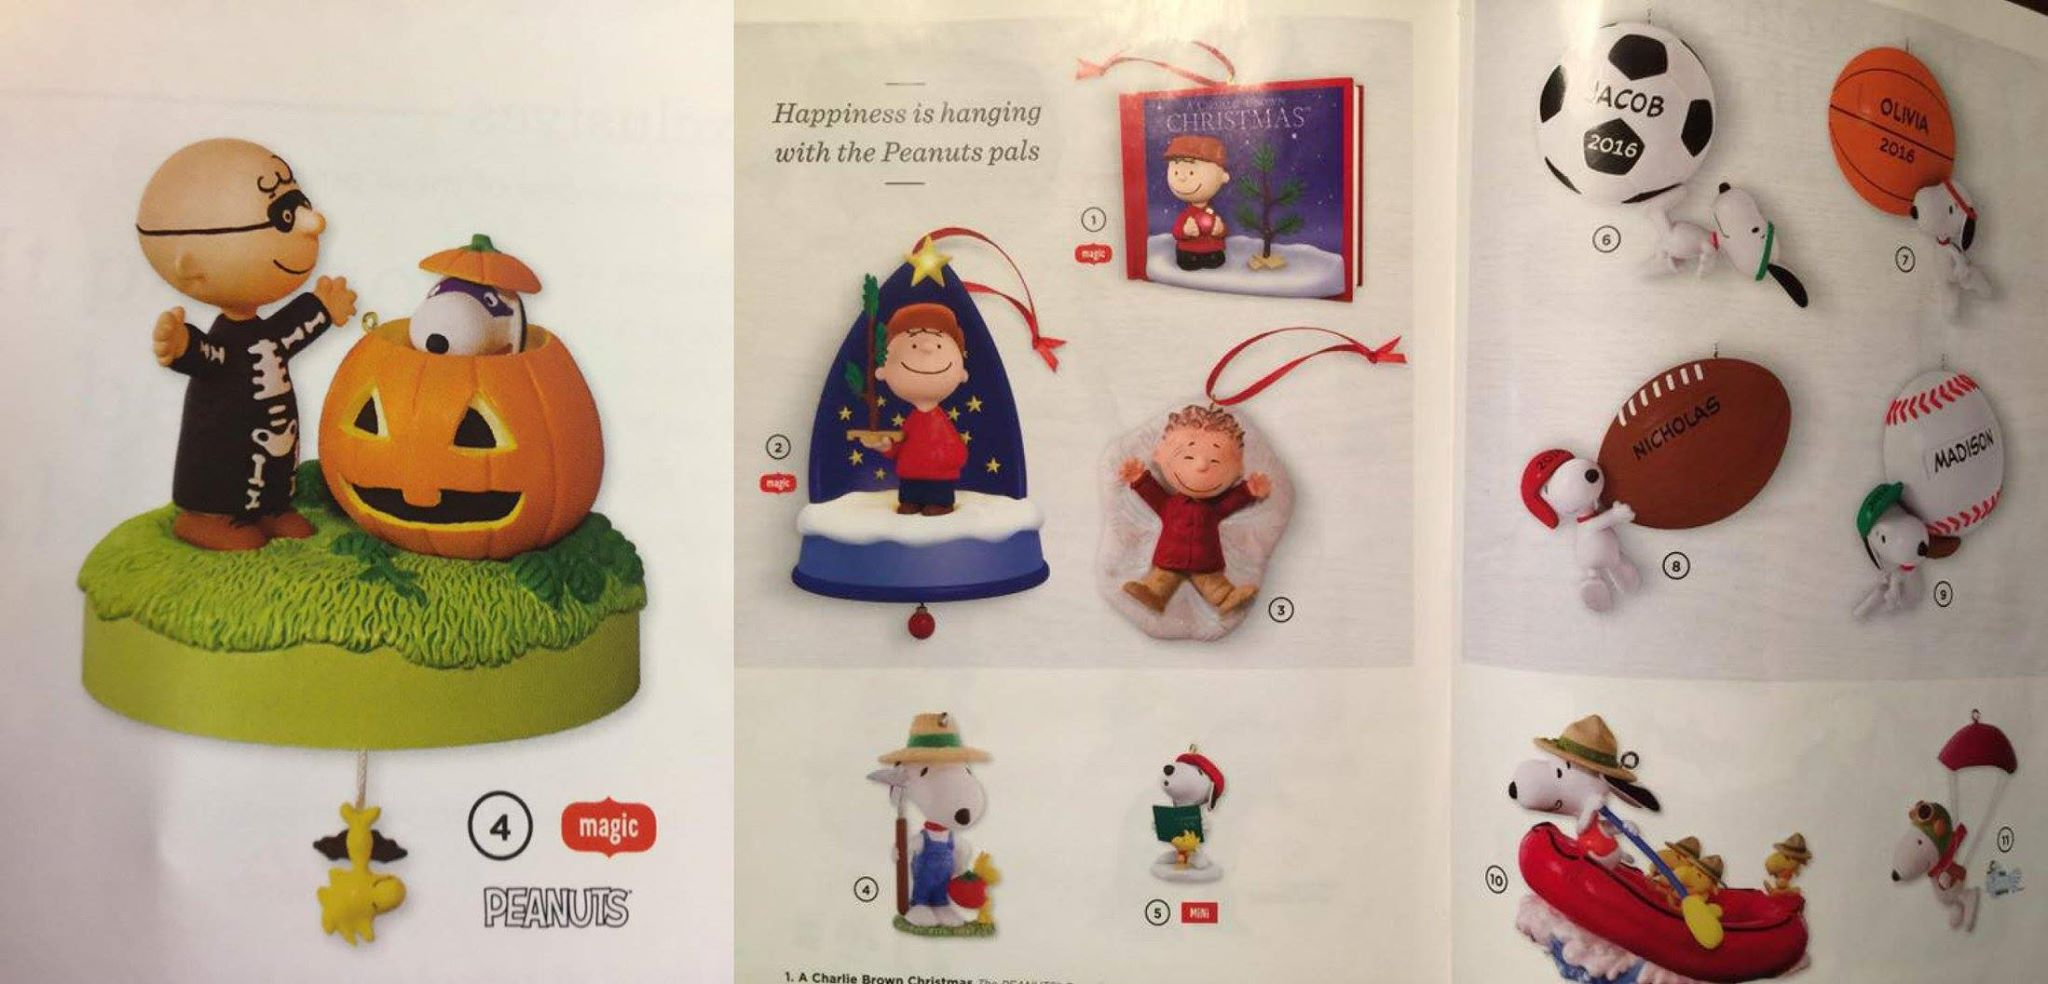 Hallmark 2016 Peanuts Christmas Ornaments Sneak Peek